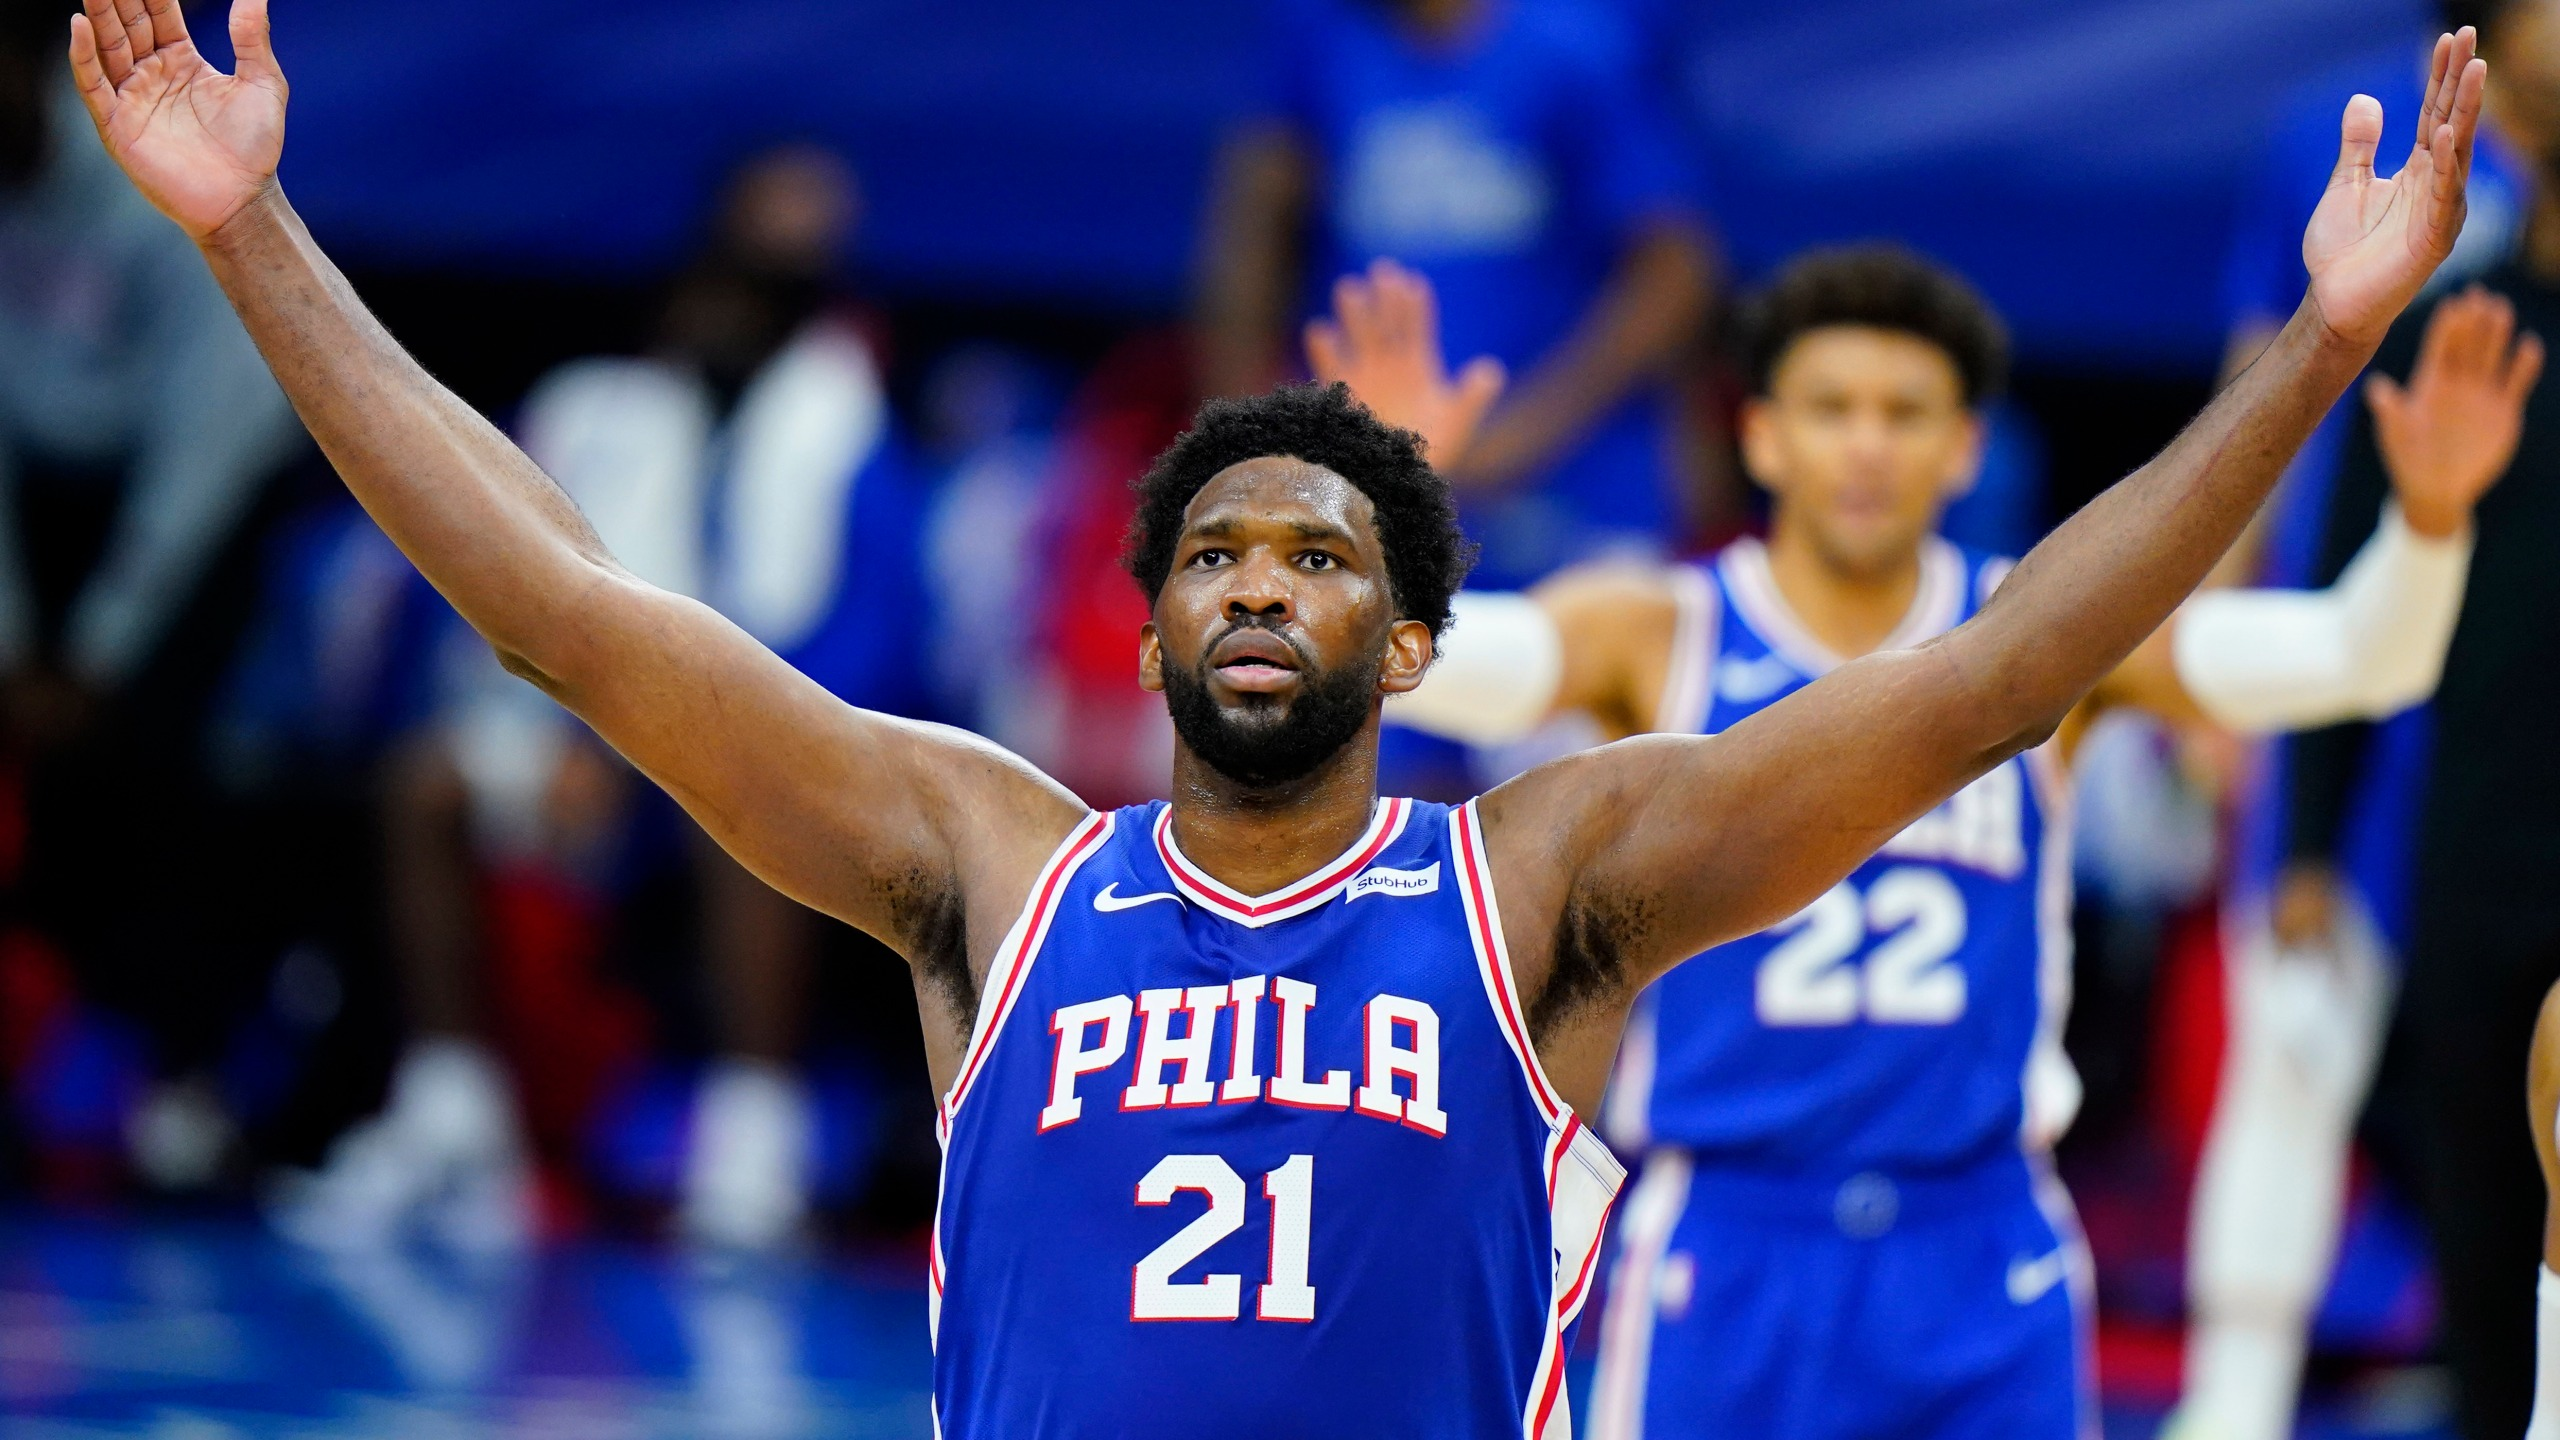 Embiid emerges as NBA MVP front-runner for East-best 76ers | KSNT News